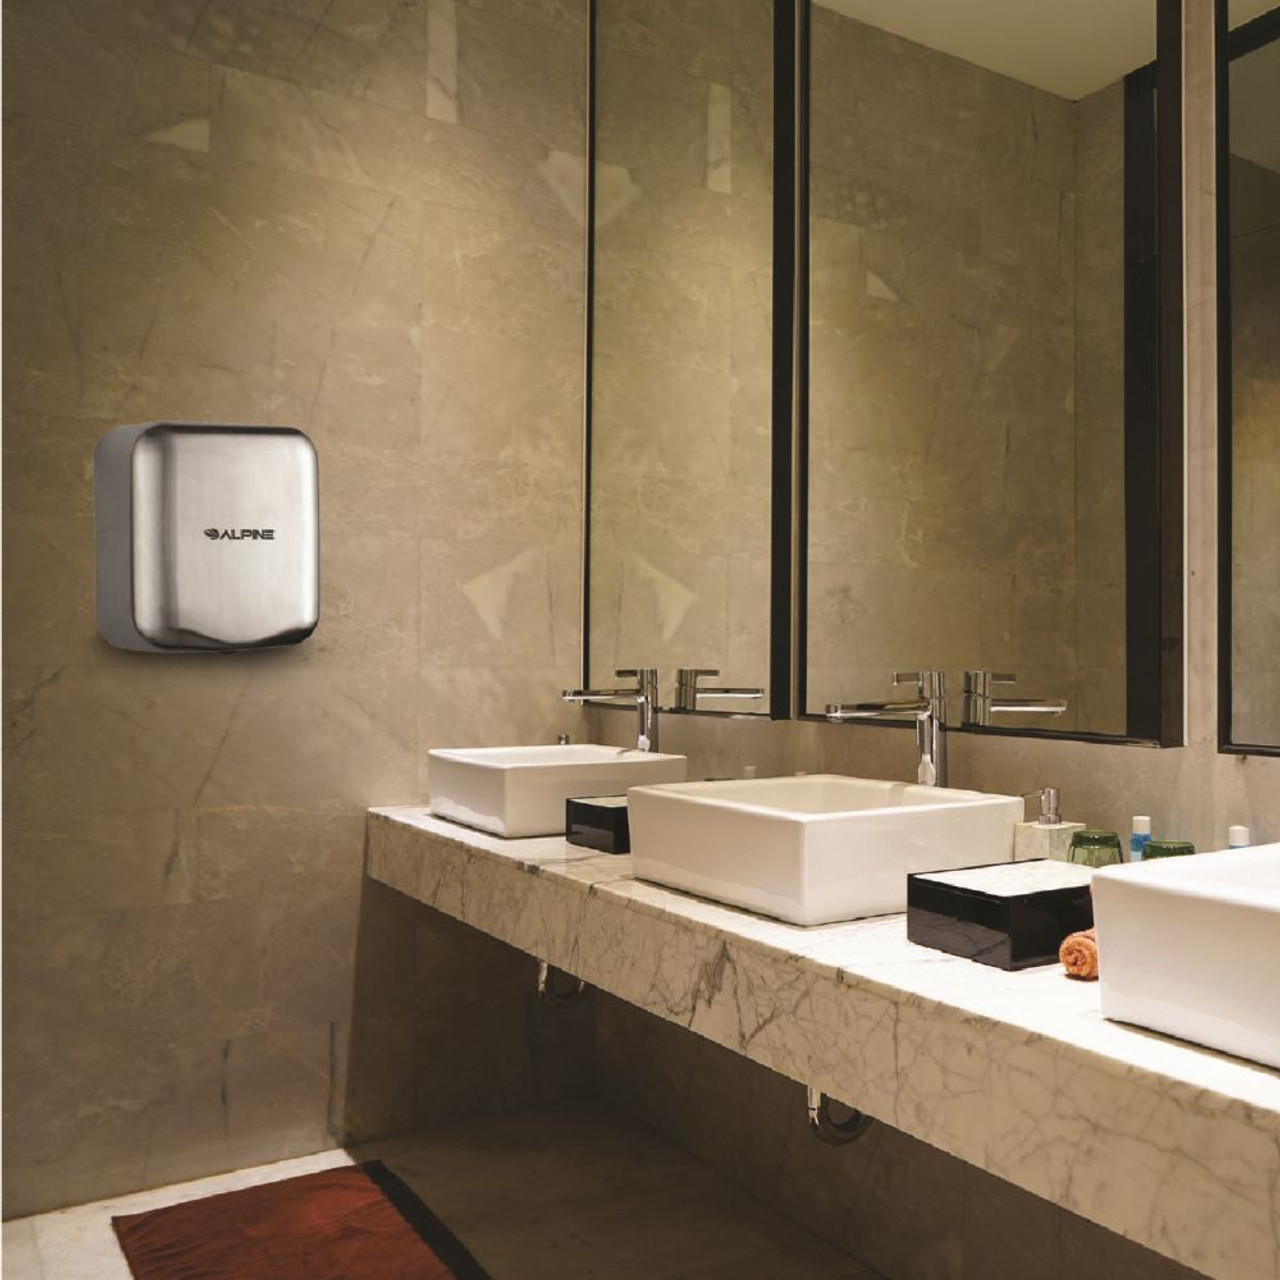 The Brushed Stainless Steel Hemlock Hand Dryer will make your restroom look more upscale.